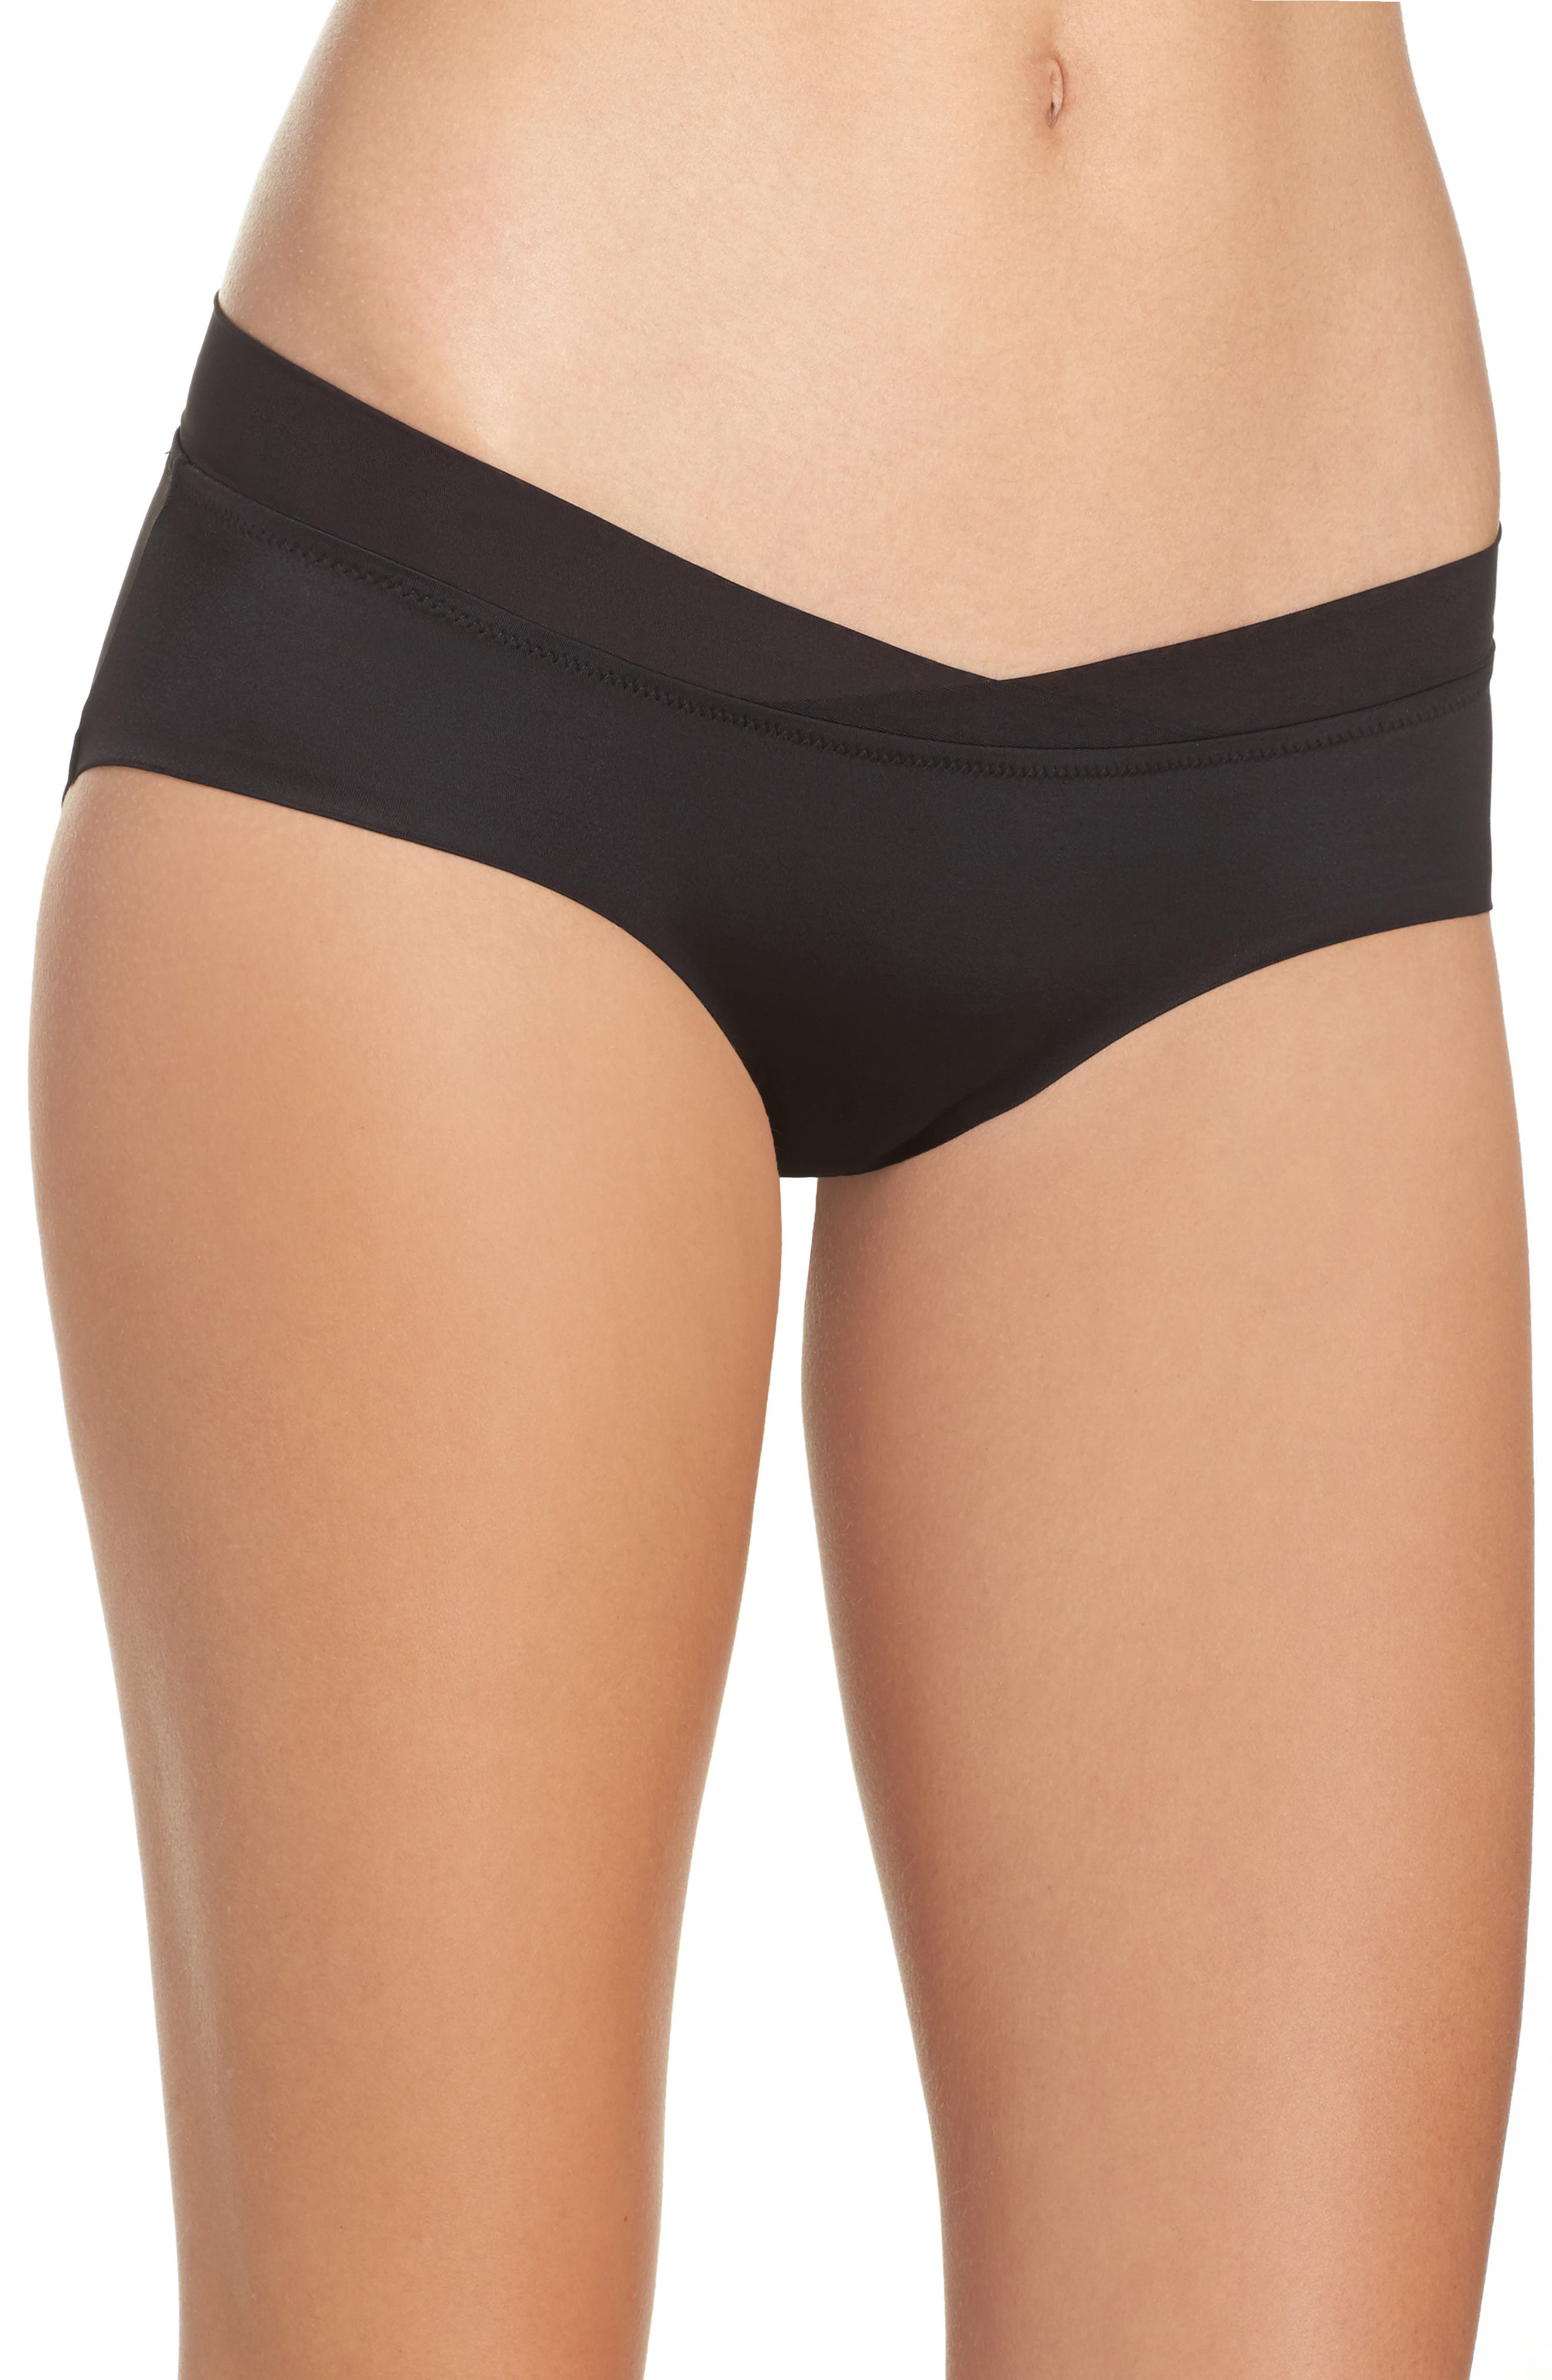 Crossfront Hipster Briefs,                         Main,                         color,